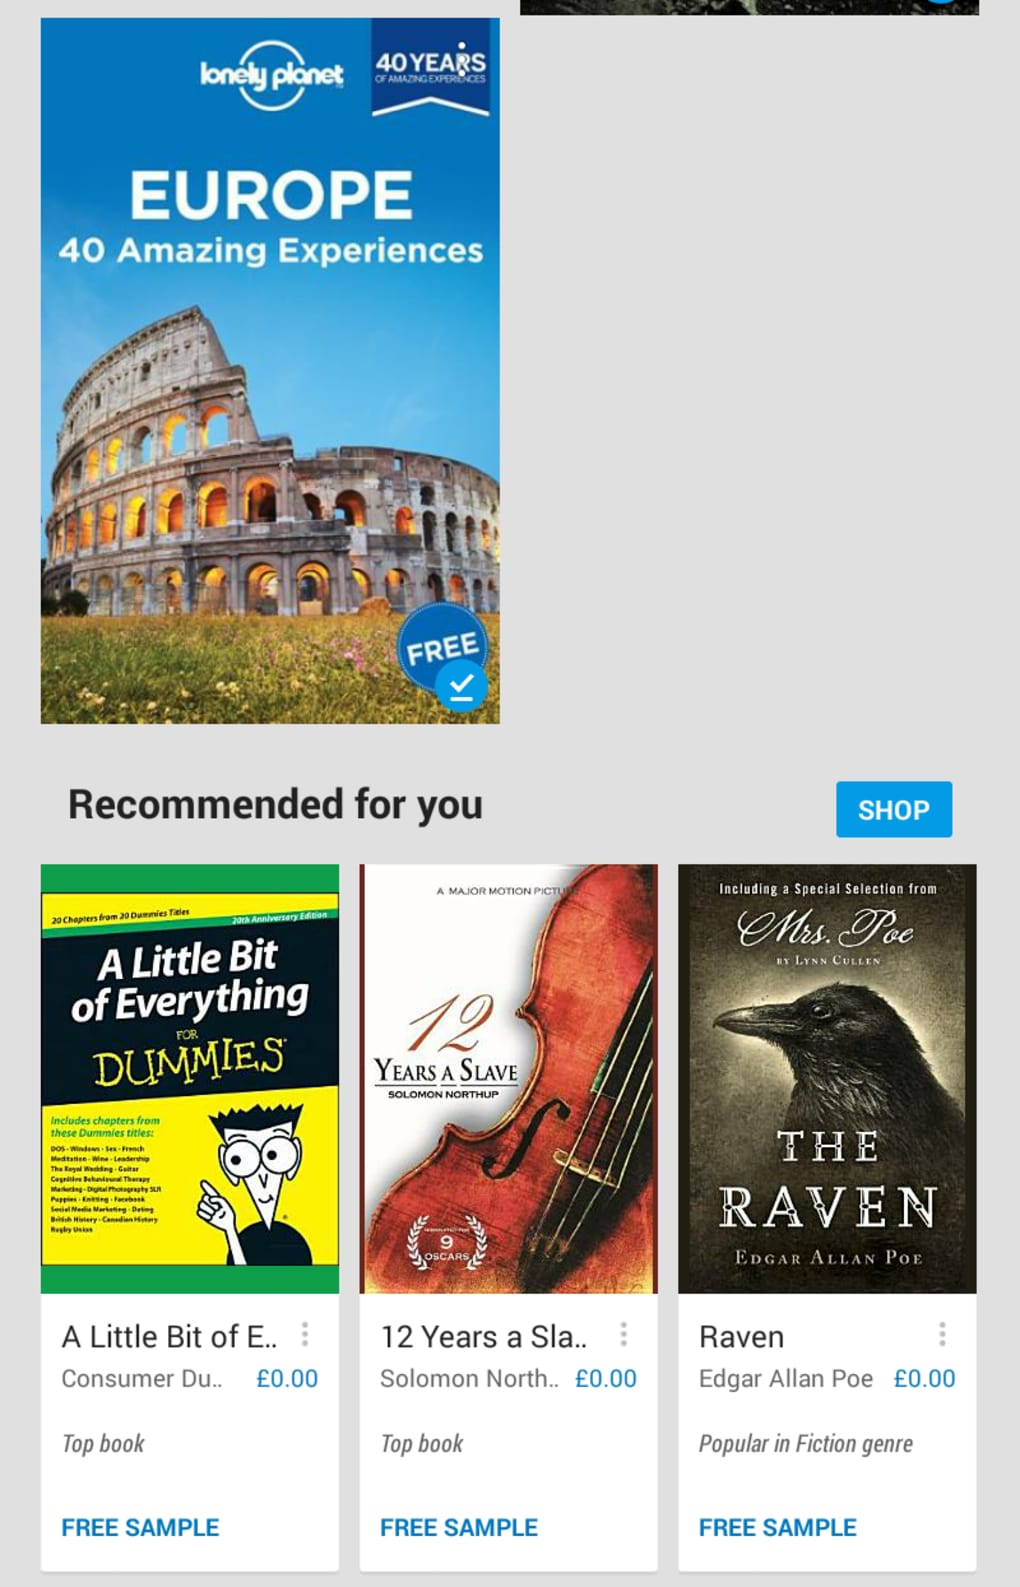 Google Book Cover Images Api : Google play books for android download